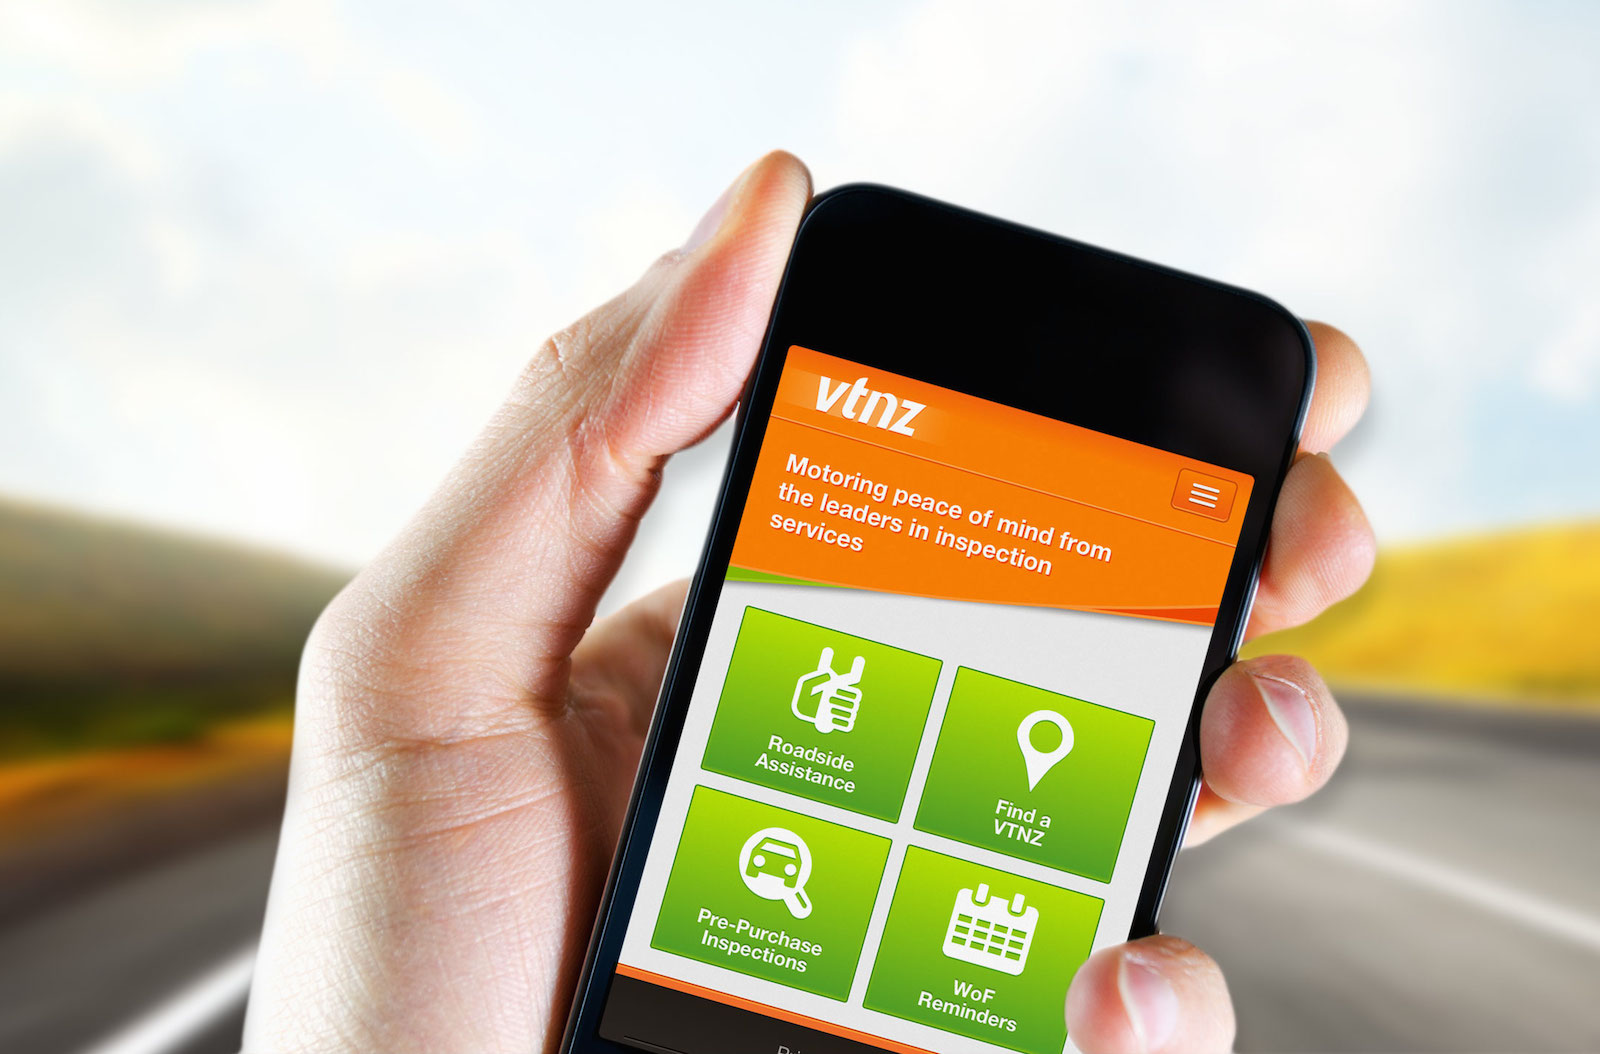 Photo of hand holding a mobile phone showing the VTNZ mobile website